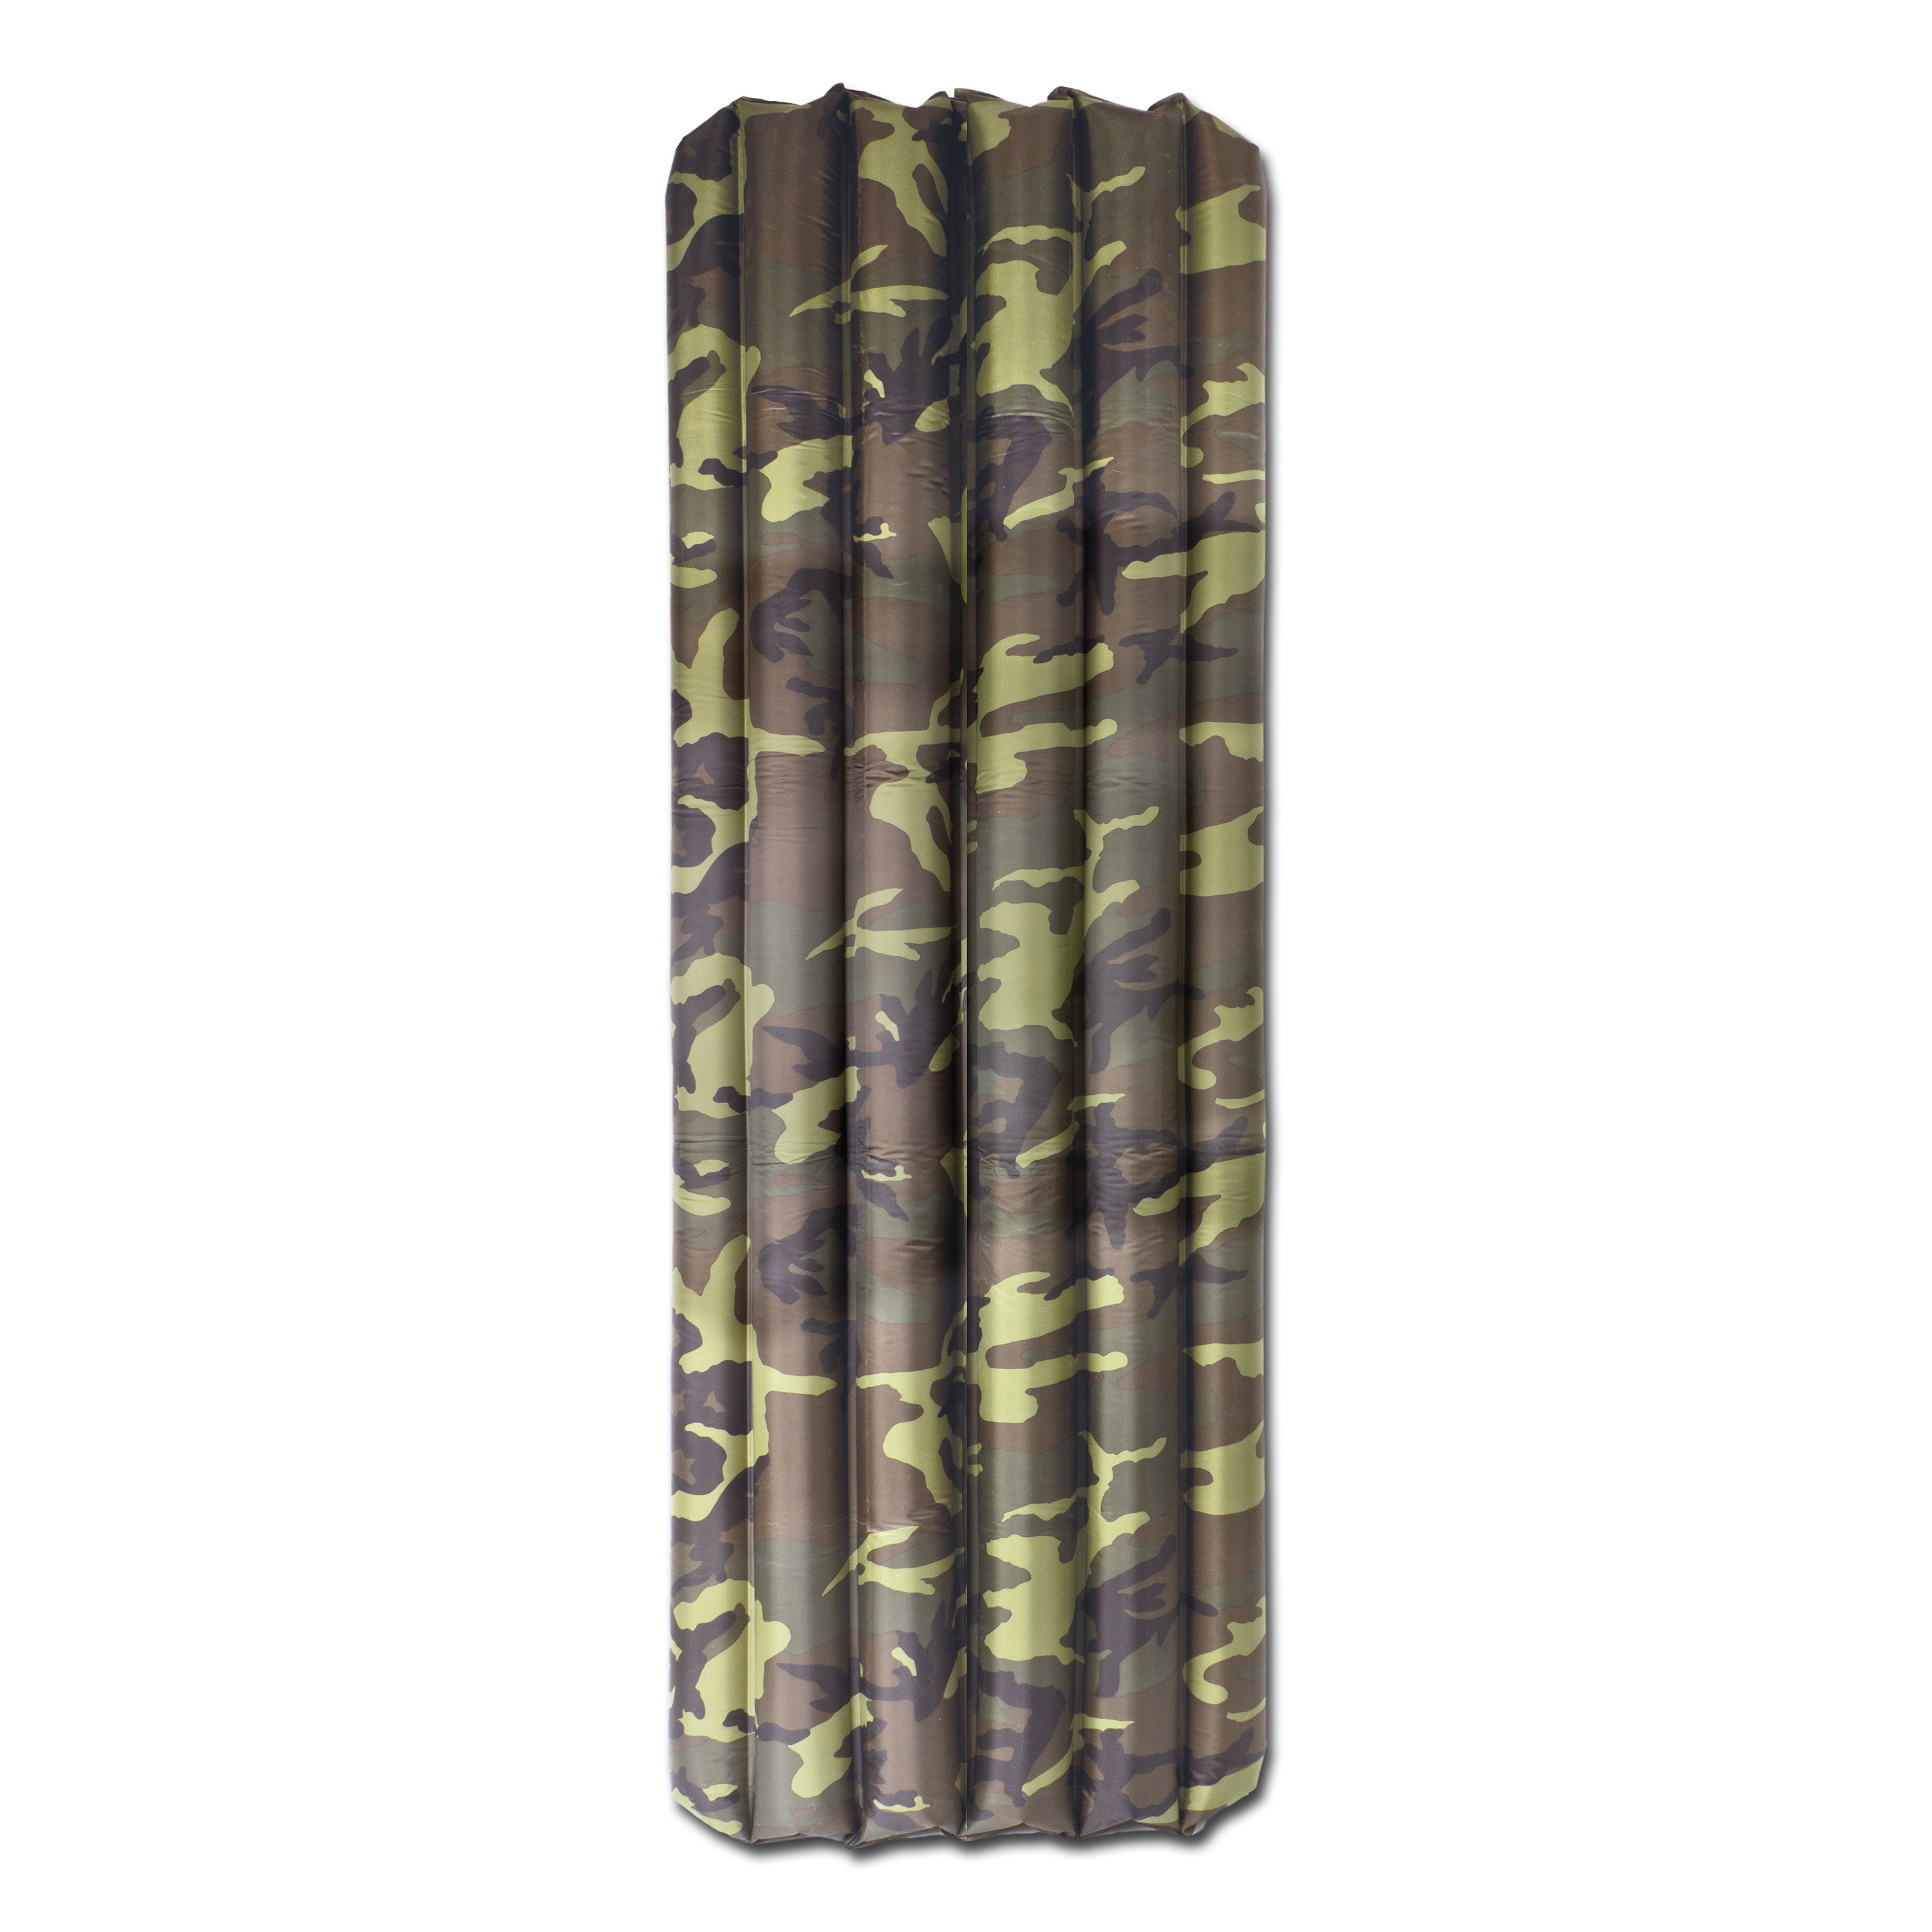 Air Bed Mil-Tec 6 Chambers woodland